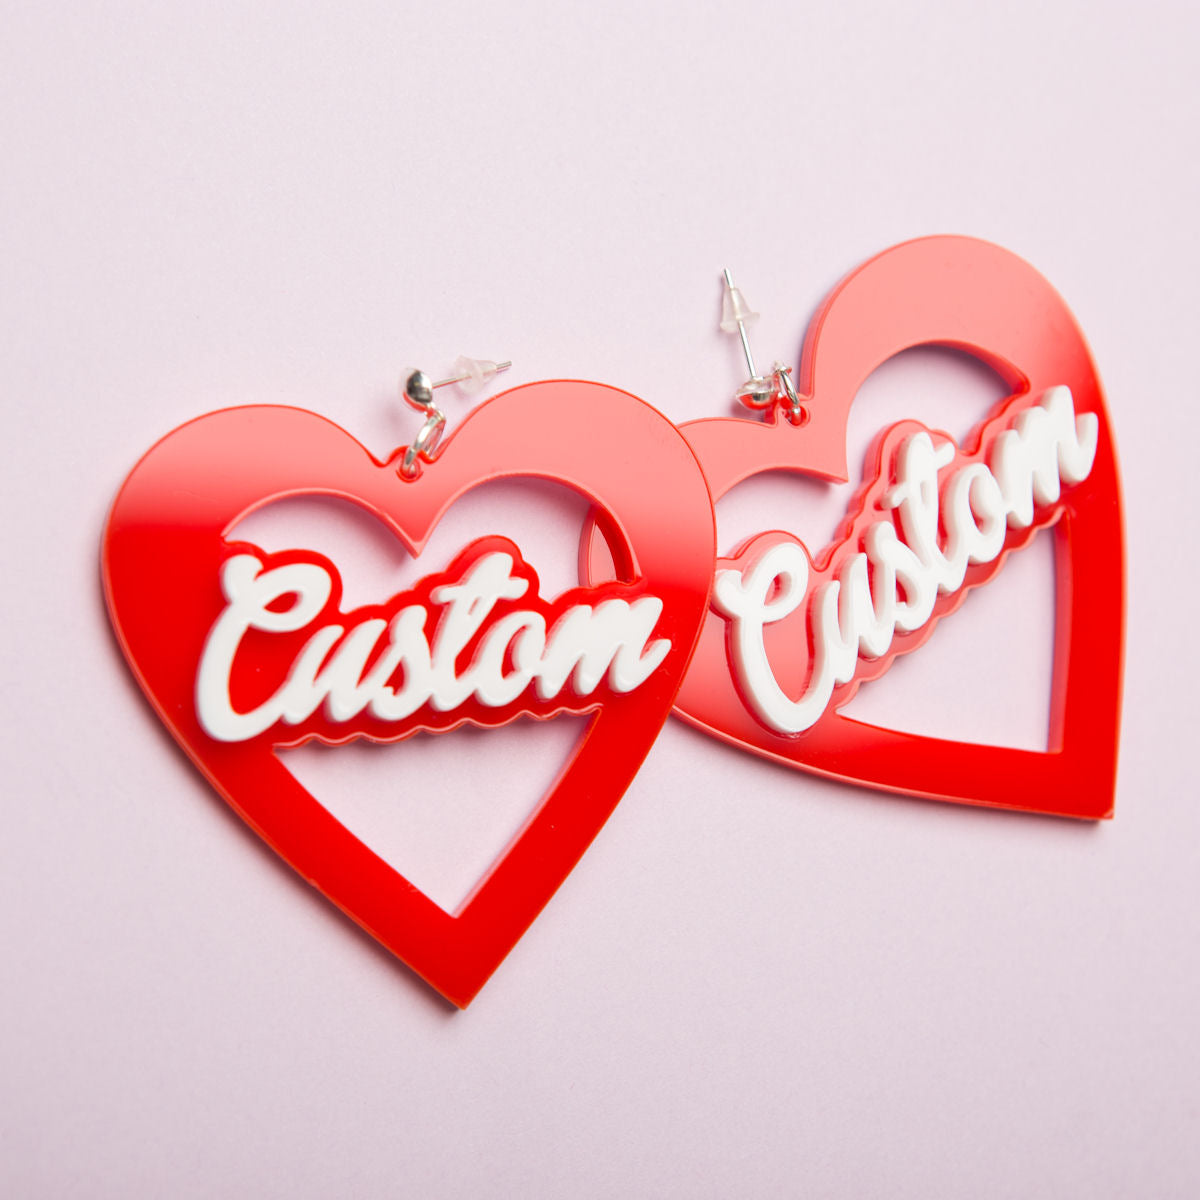 Sugar & Vice Custom Heart earrings social media